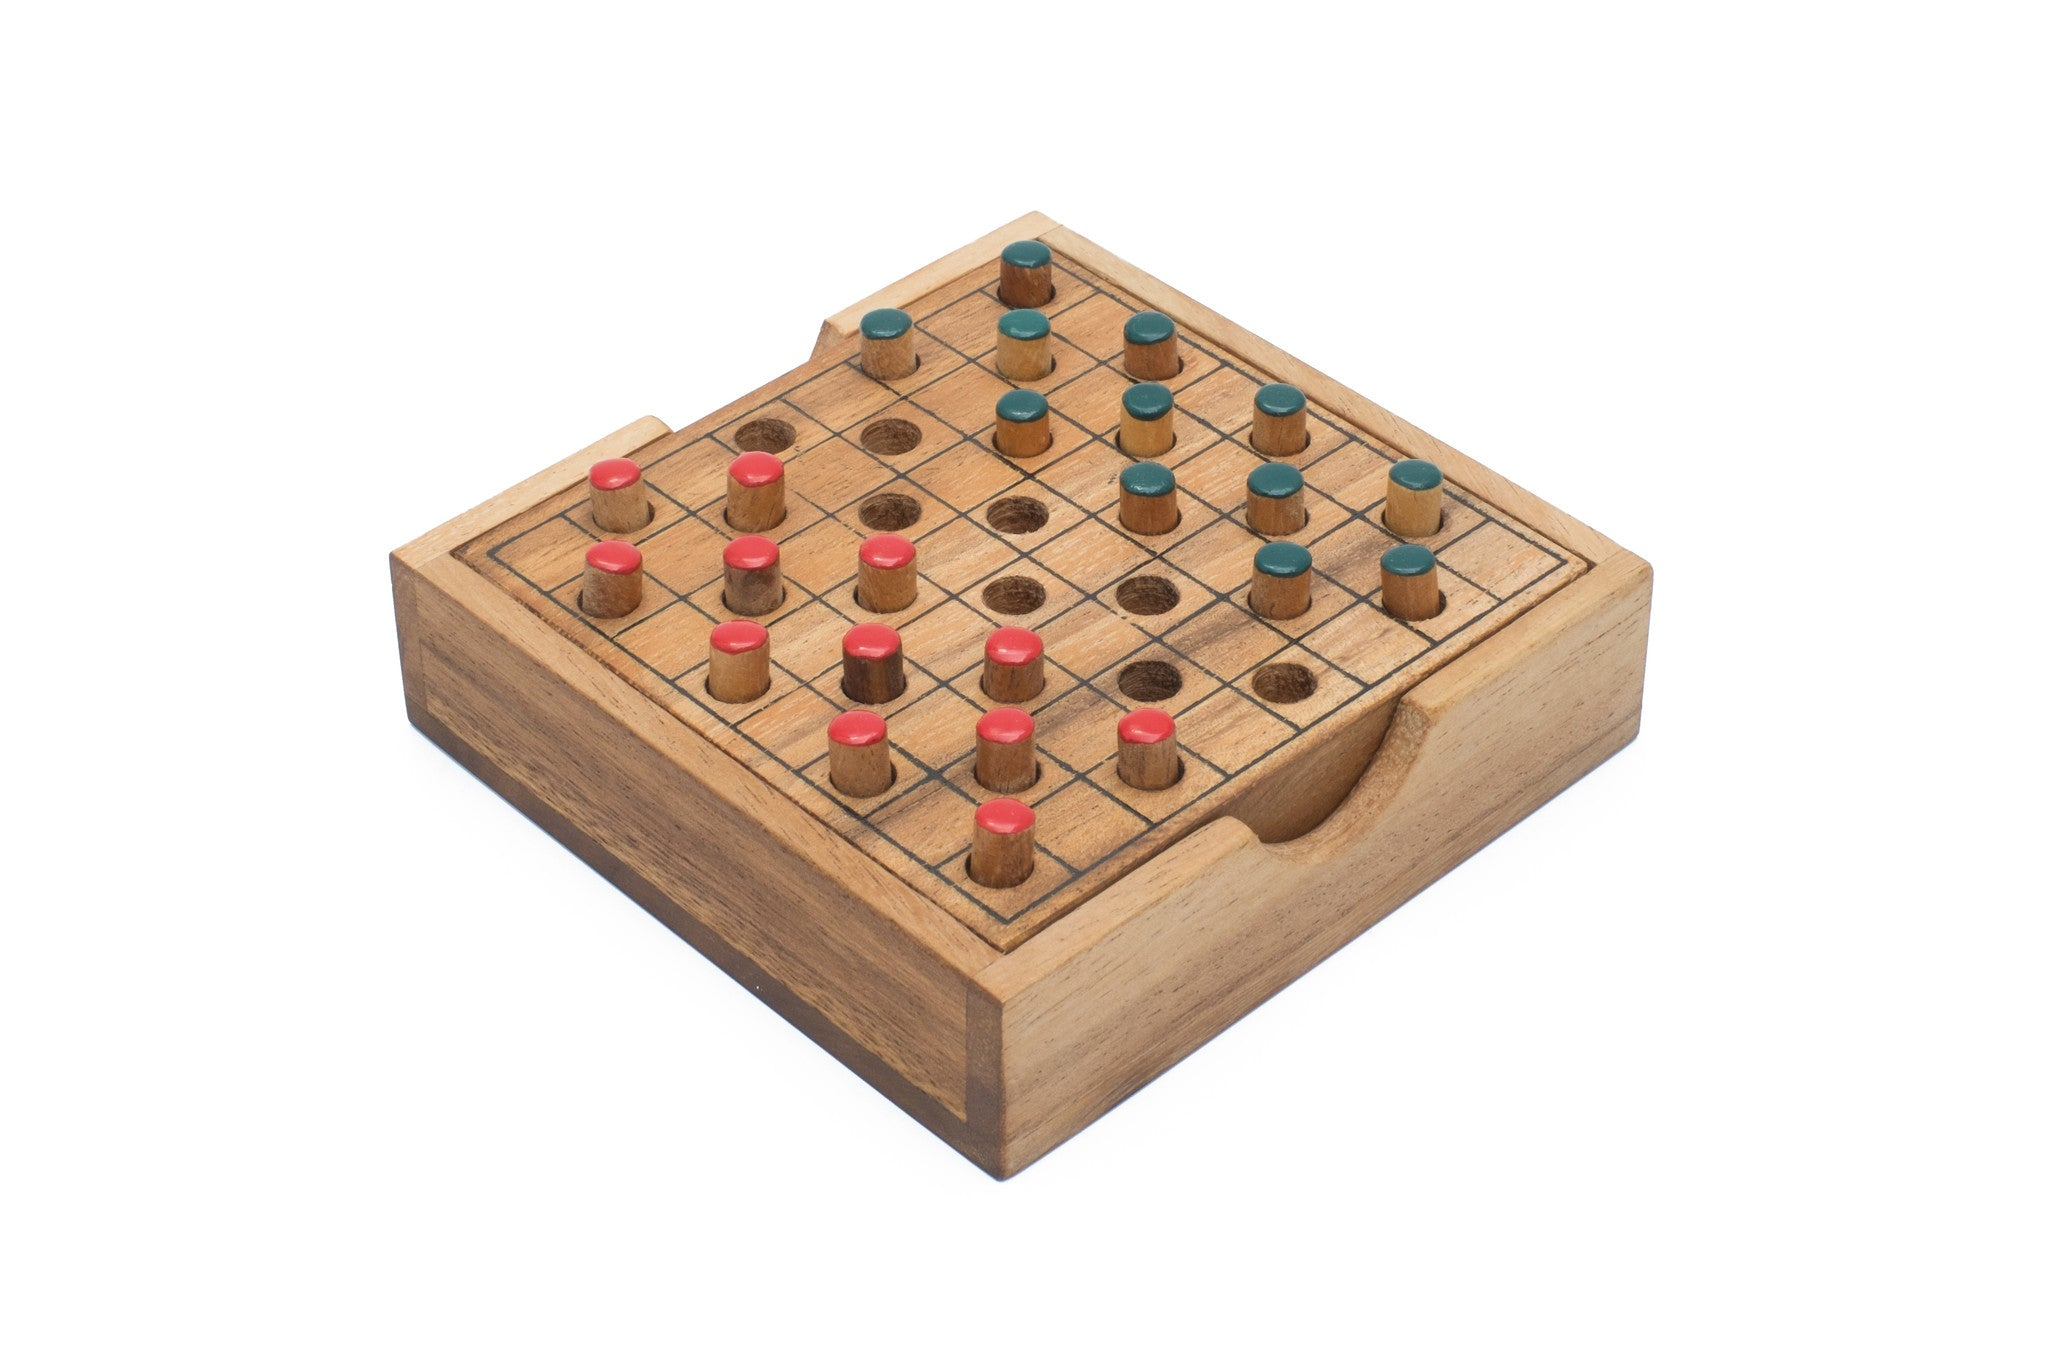 How Do You Play Checkers Game: Basic Rules and How to Win